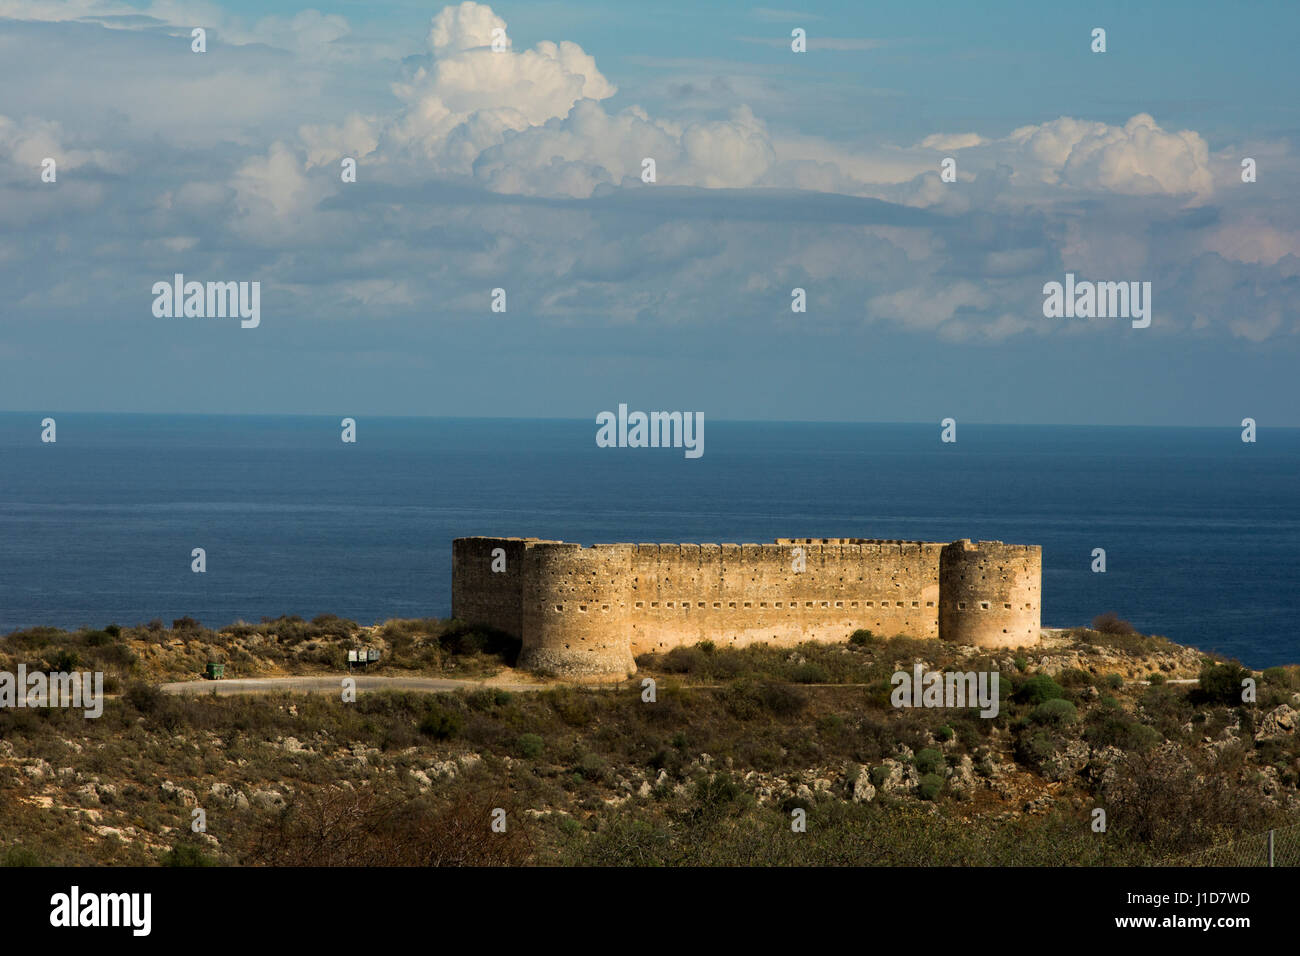 Aptera was an ancient city in western Crete built from the 7th century BC which was destroyed in 824 AC and is nowadays Stock Photo